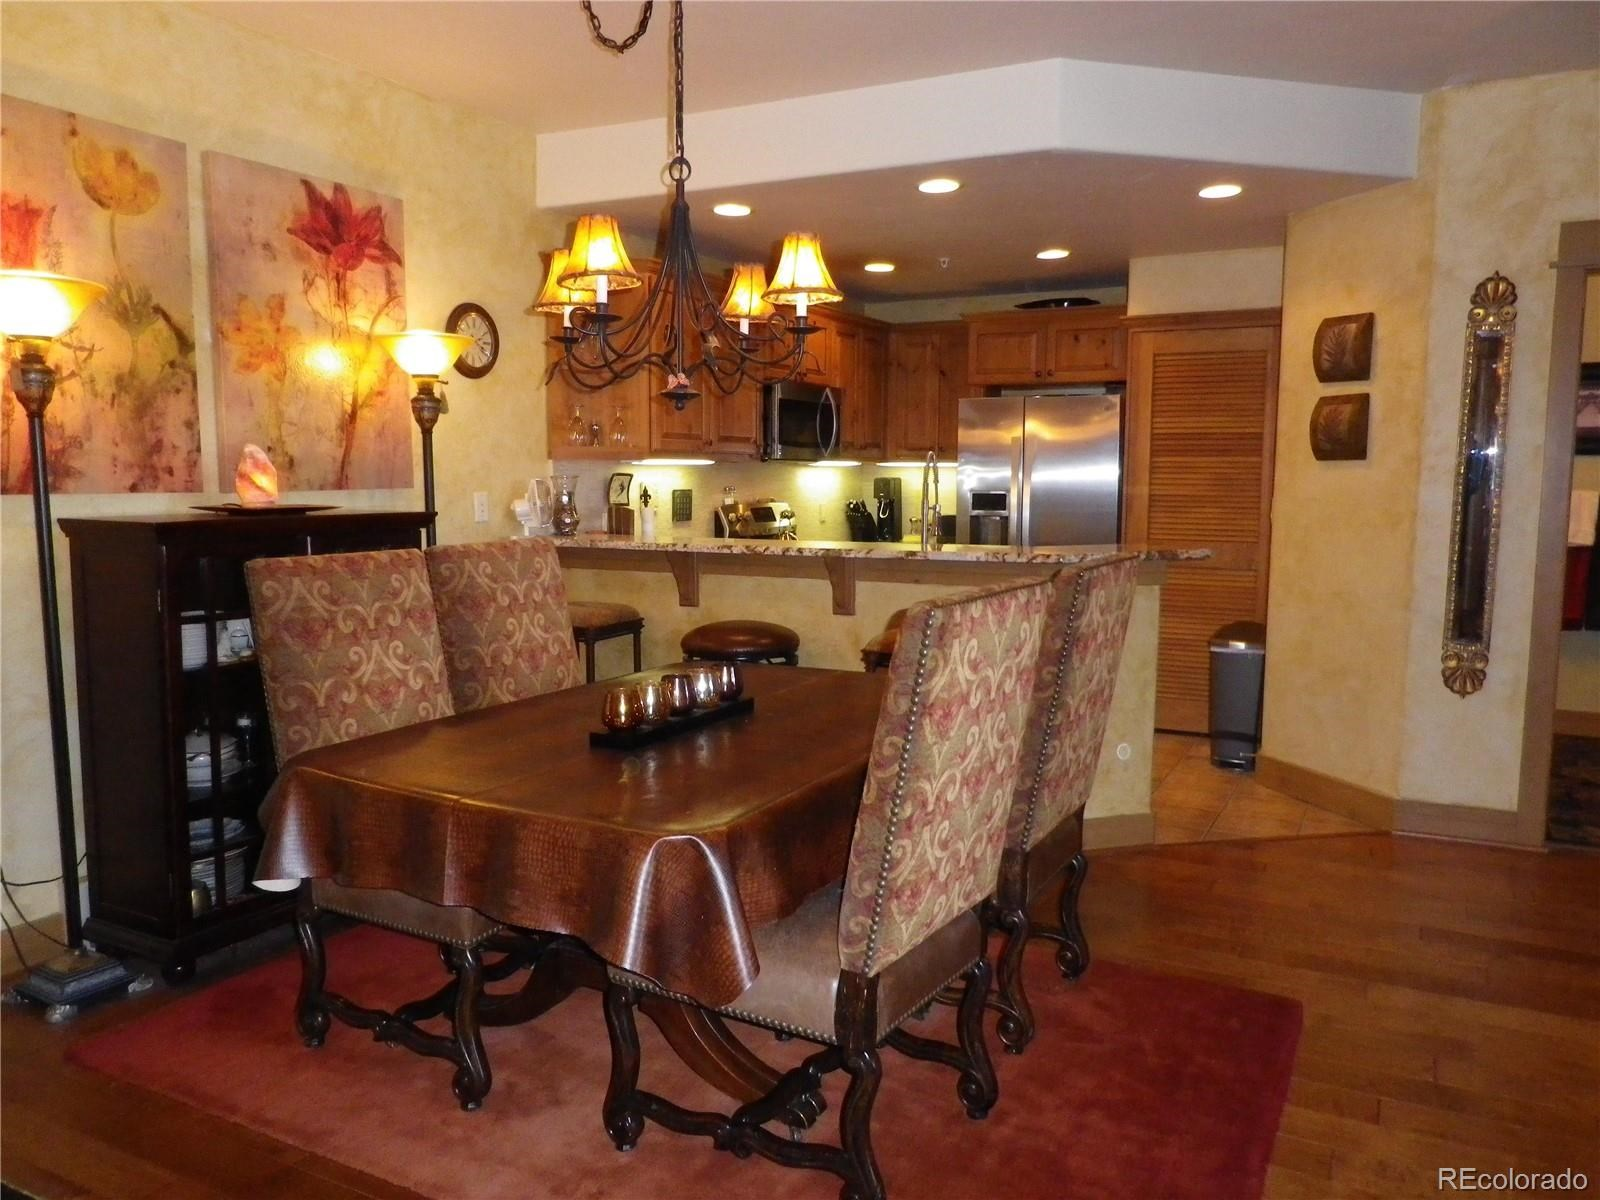 MLS# 4824102 - 2 - 1463 Flattop Circle #201, Steamboat Springs, CO 80487